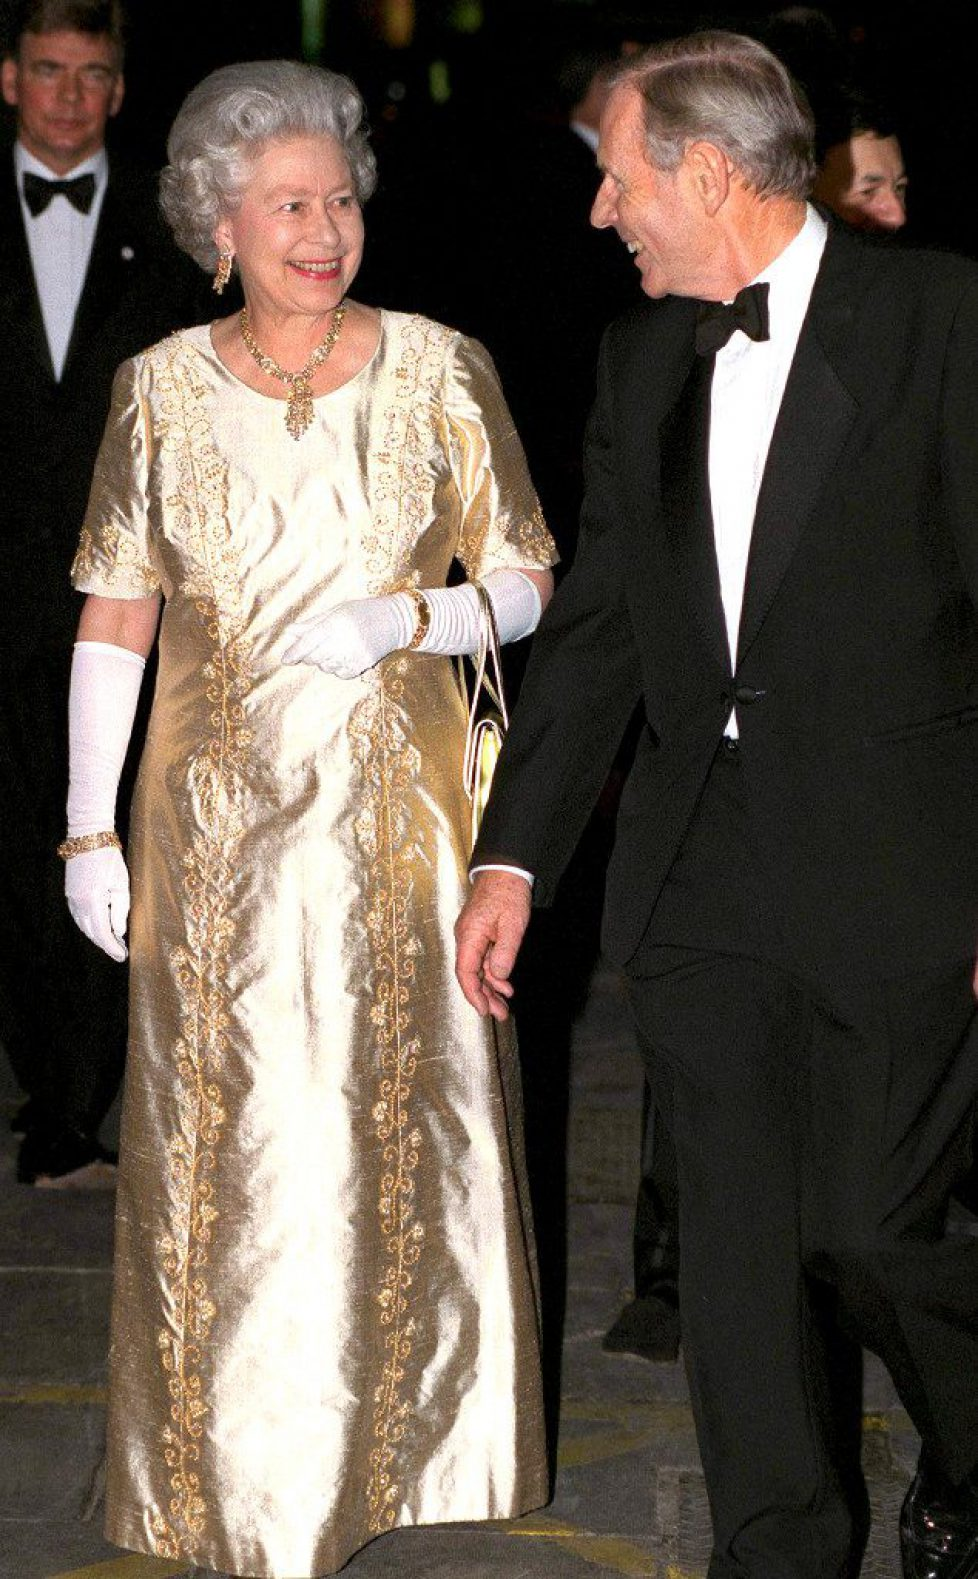 rs_634x1024-141114161934-634-queen-elizabeth-gold-dress-jl-111414